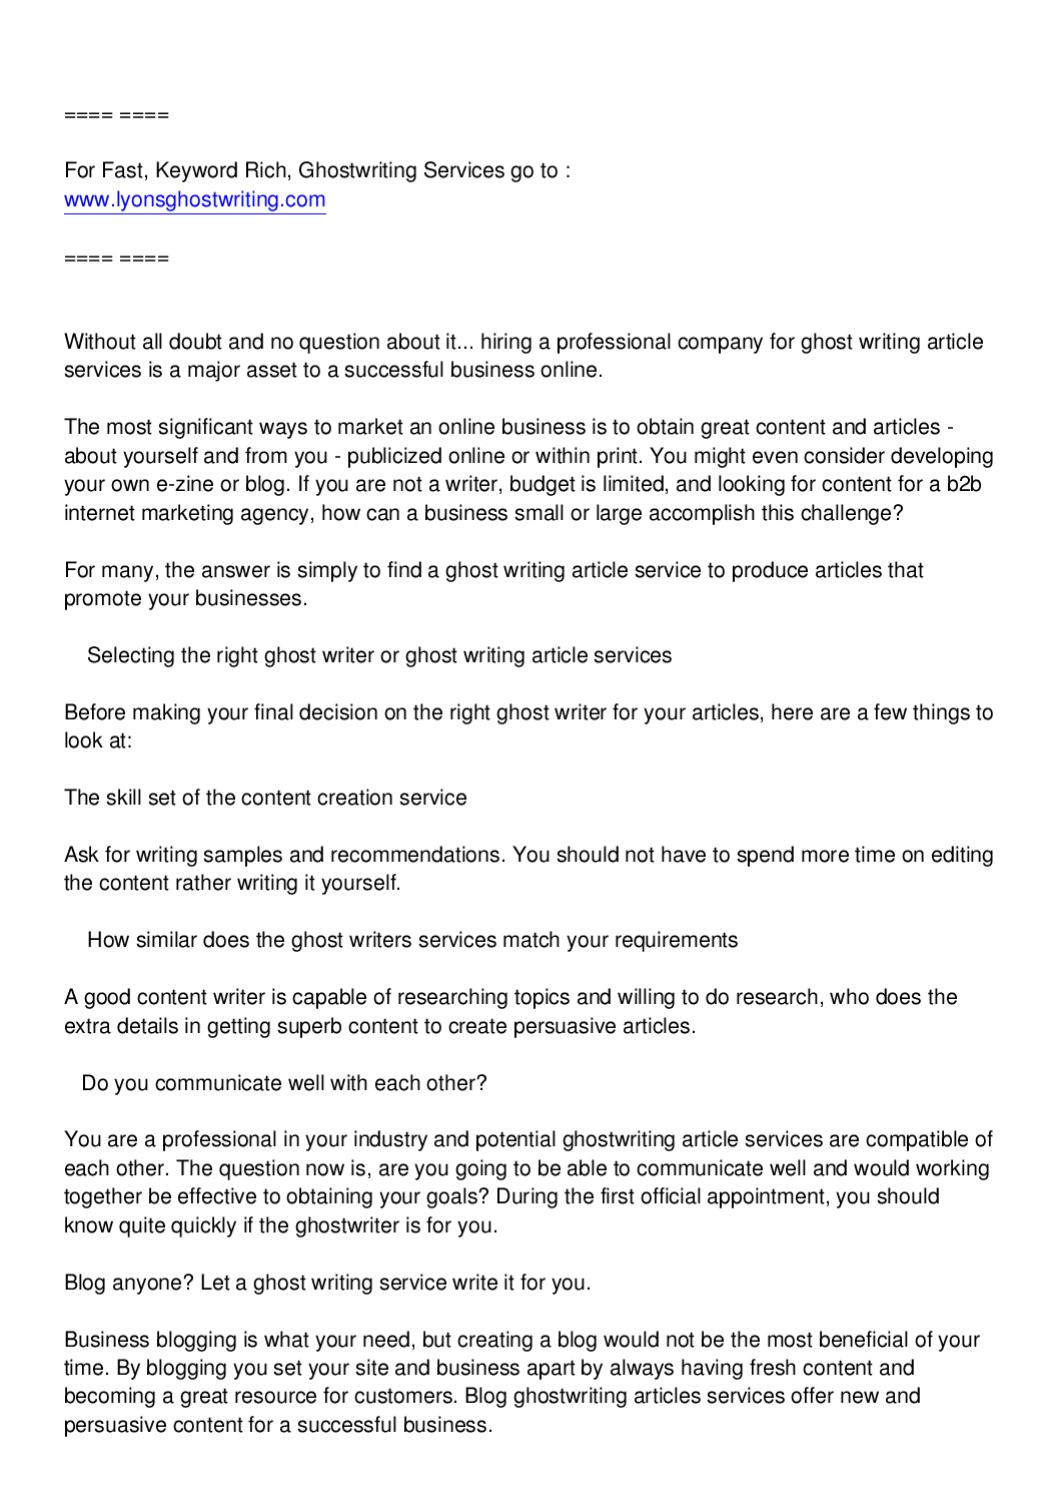 Persuasive ghostwriting site call to action essay writing